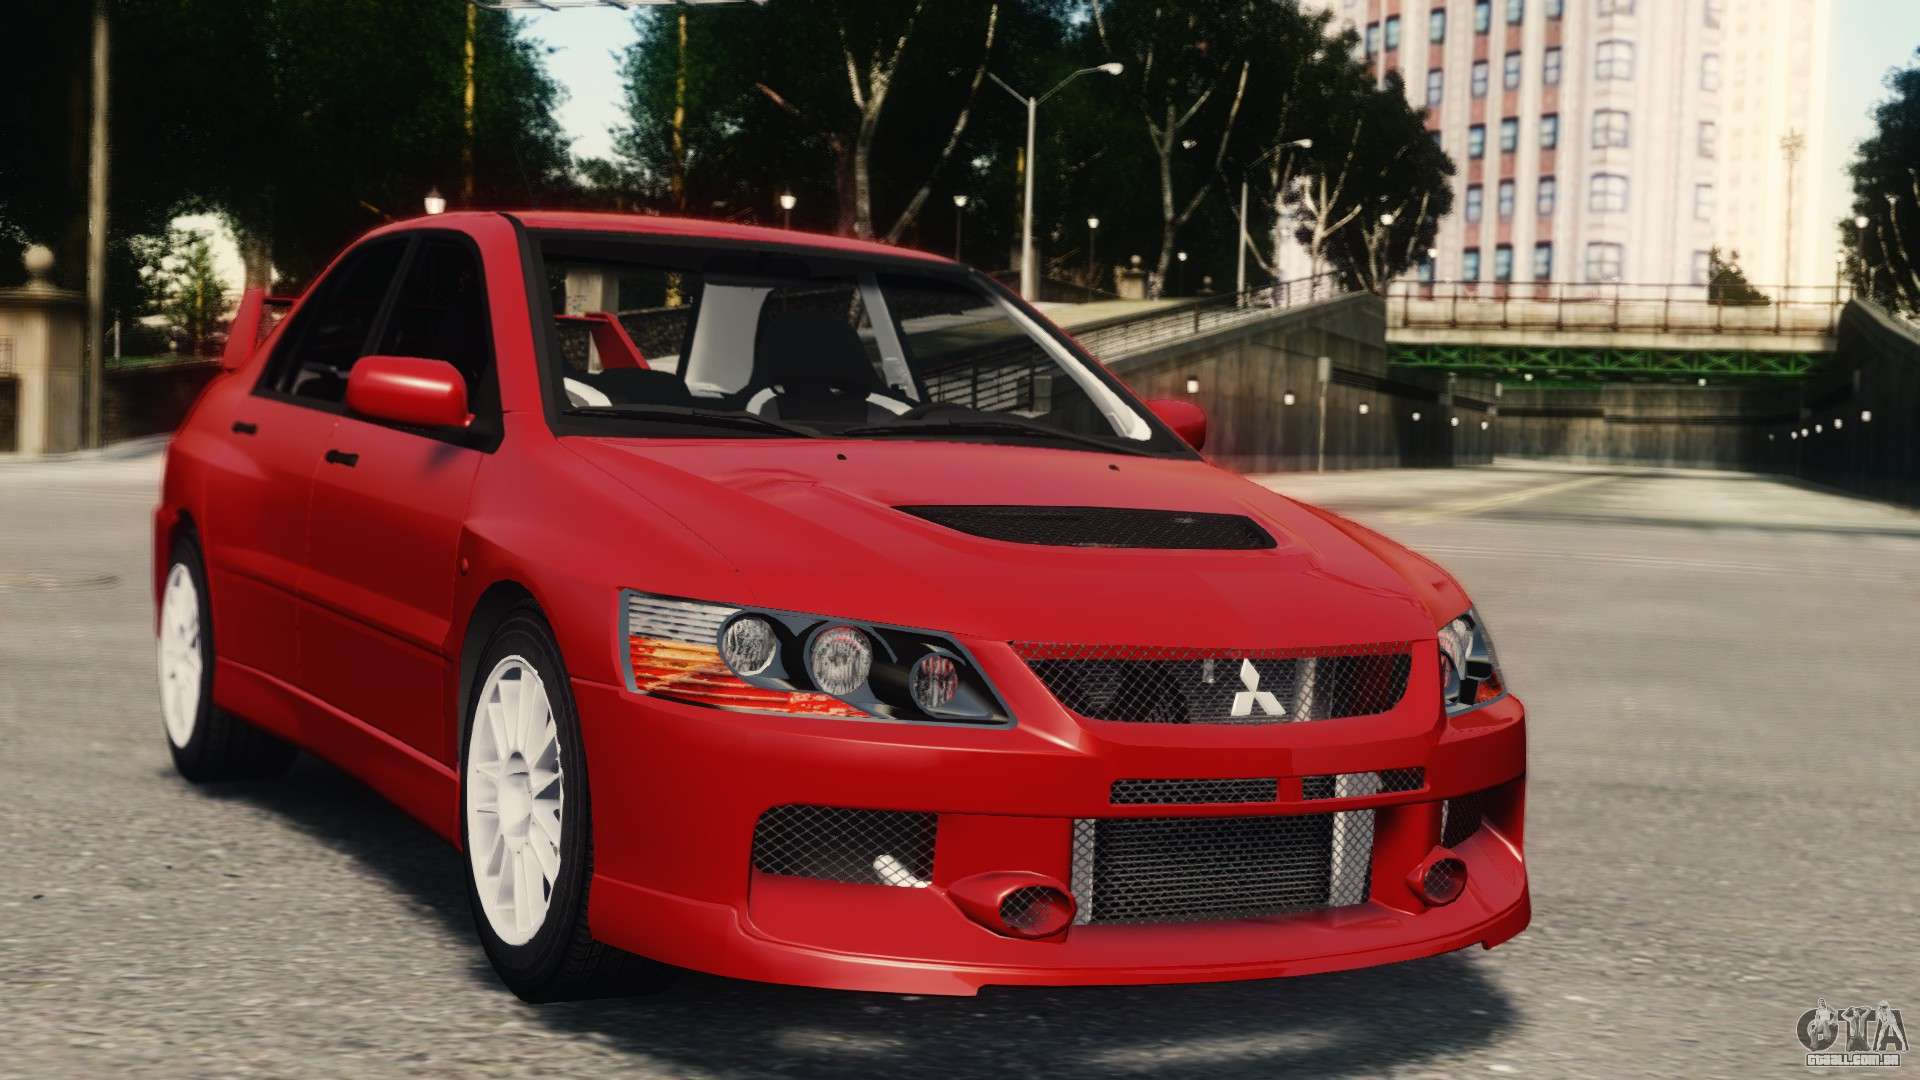 Exceptional GTAall.com